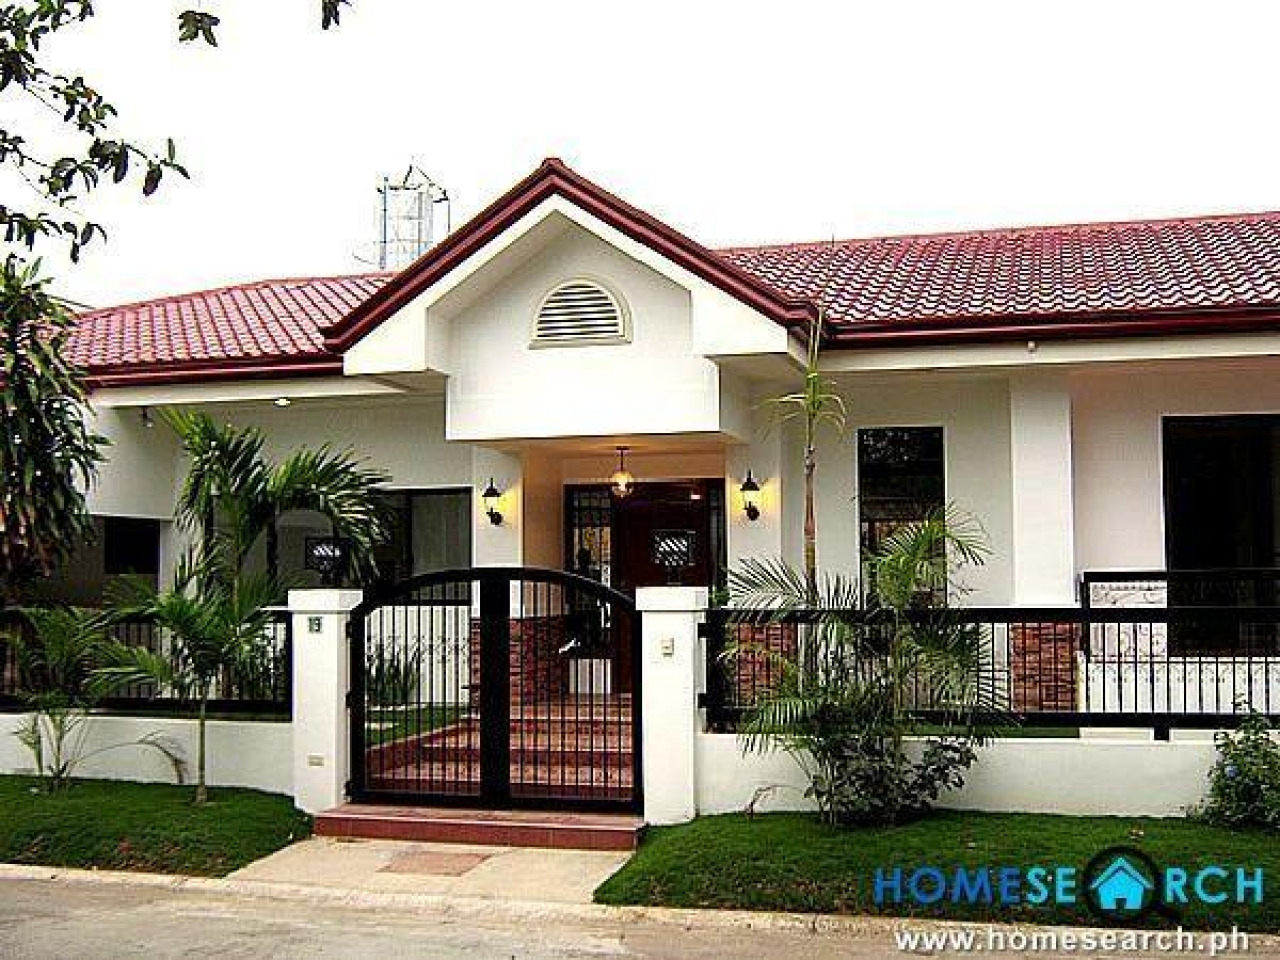 philippines style house plans bungalow house plans philippines design lrg efe7ae5f776927d0 - Download Small Bungalow House Design With Terrace In Philippines  Pictures